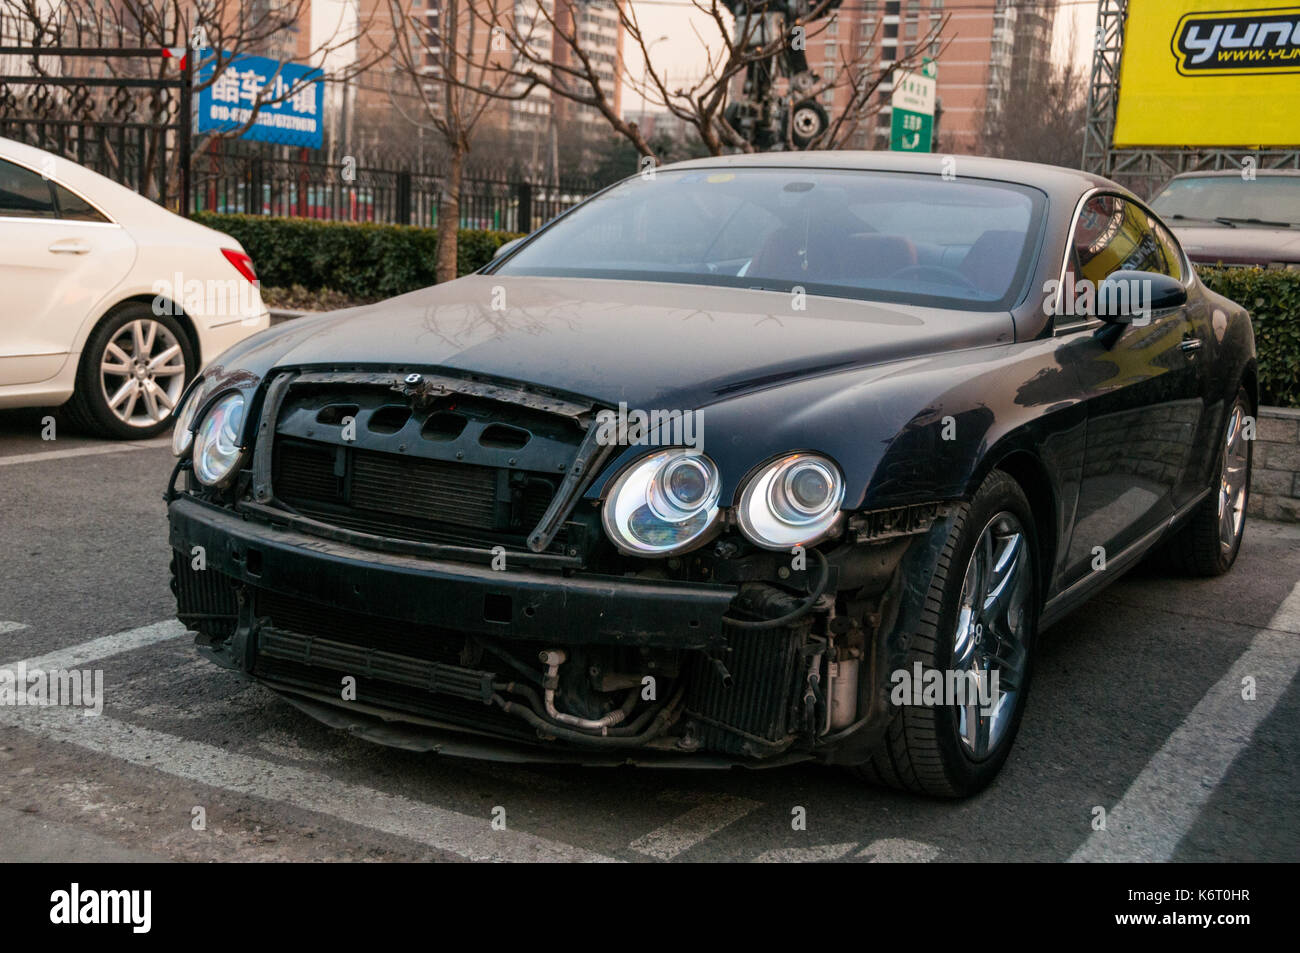 Bentley Continental Gt High Resolution Stock Photography And Images Alamy